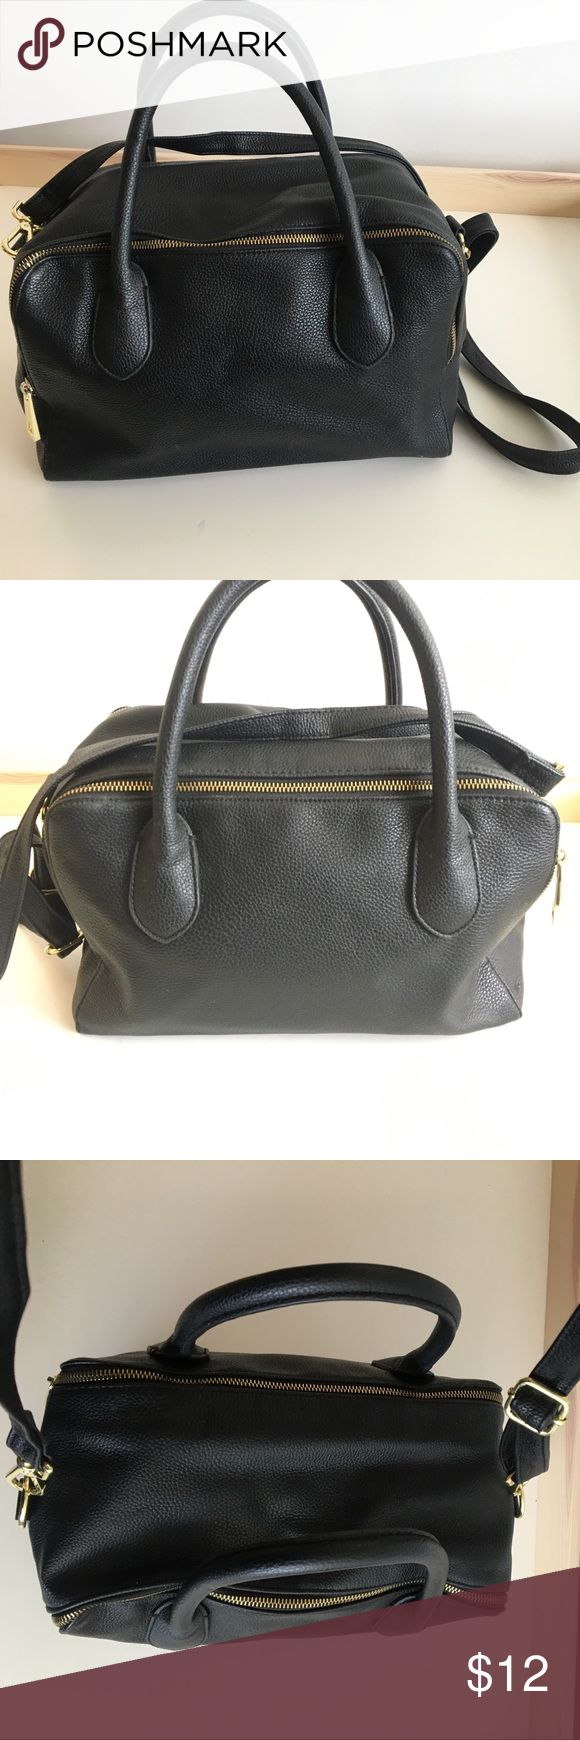 Black H&M Purse 2 sided opening. Can be worn on the shoulder or as a cross body. Adjustable strap. gold hardware. H&M Bags Shoulder Bags